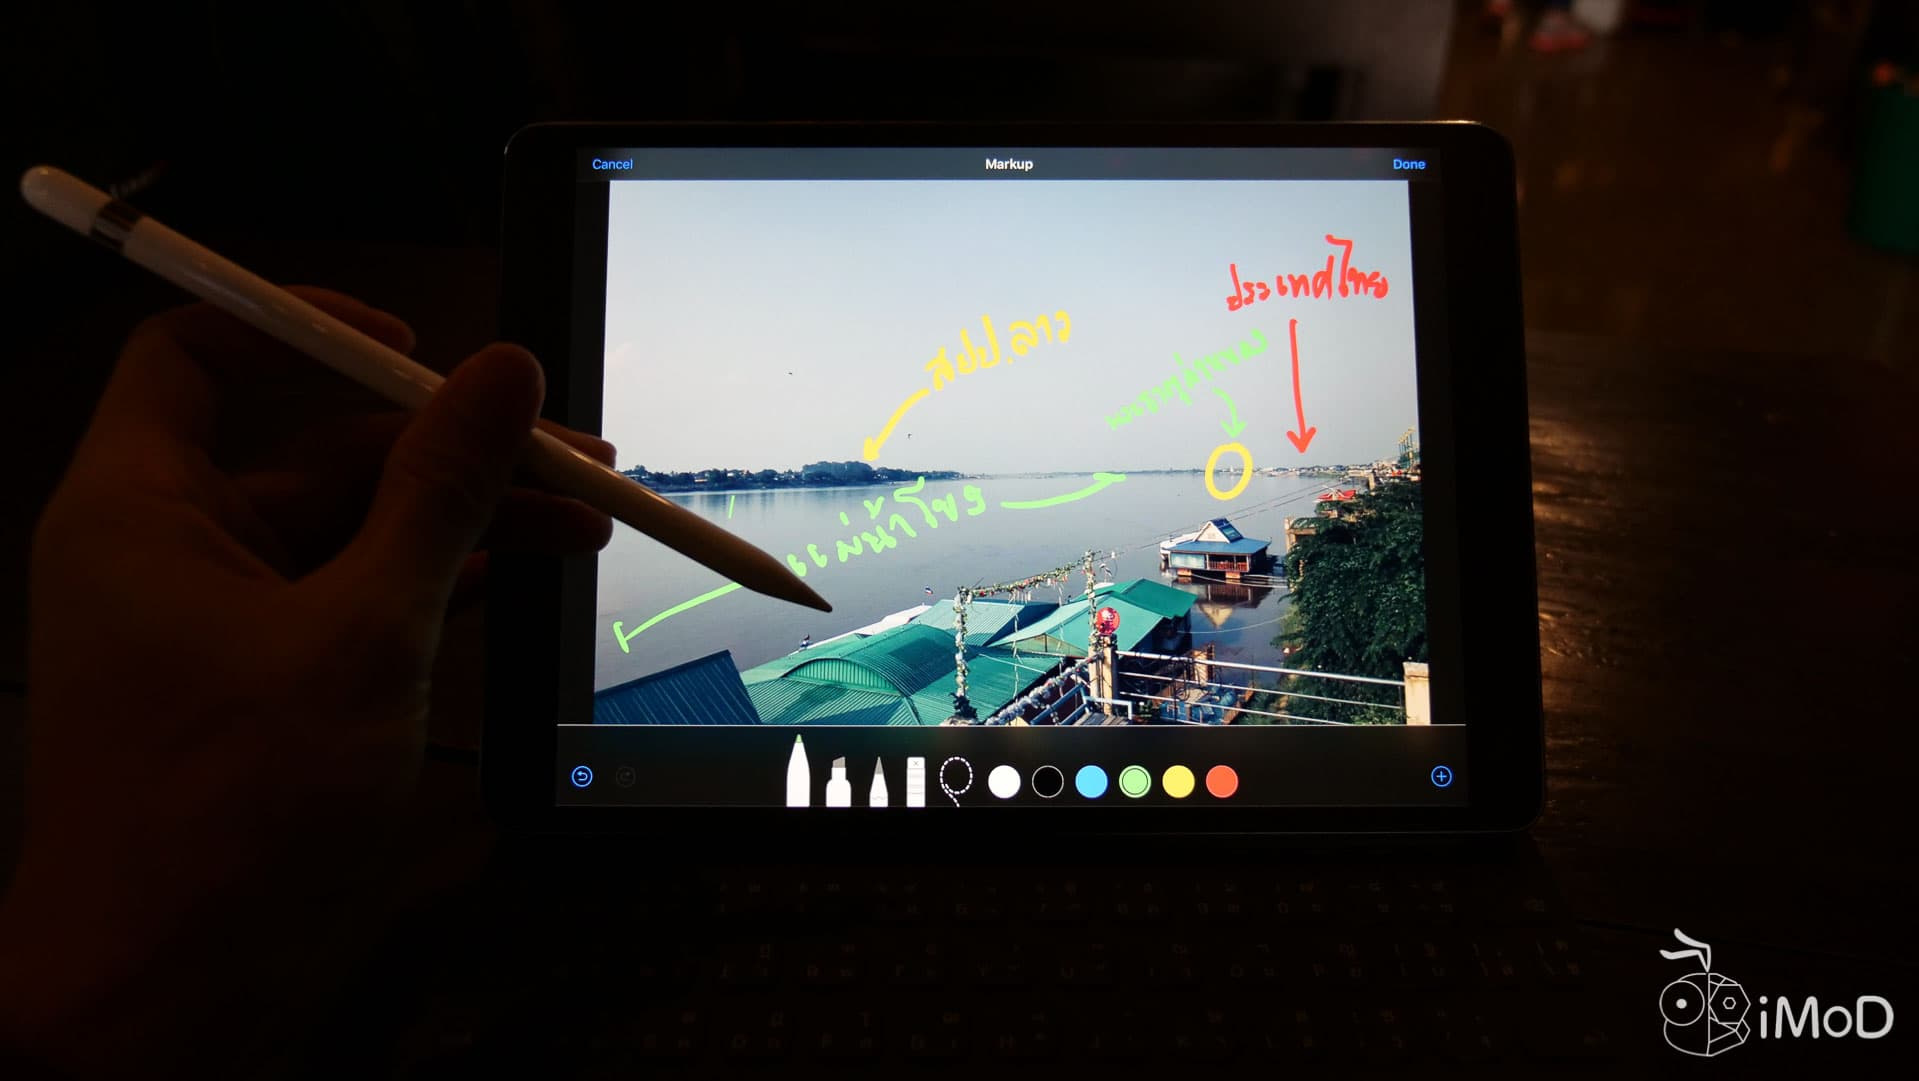 Focus Ipad Pro 10.5 Smart Note 2597